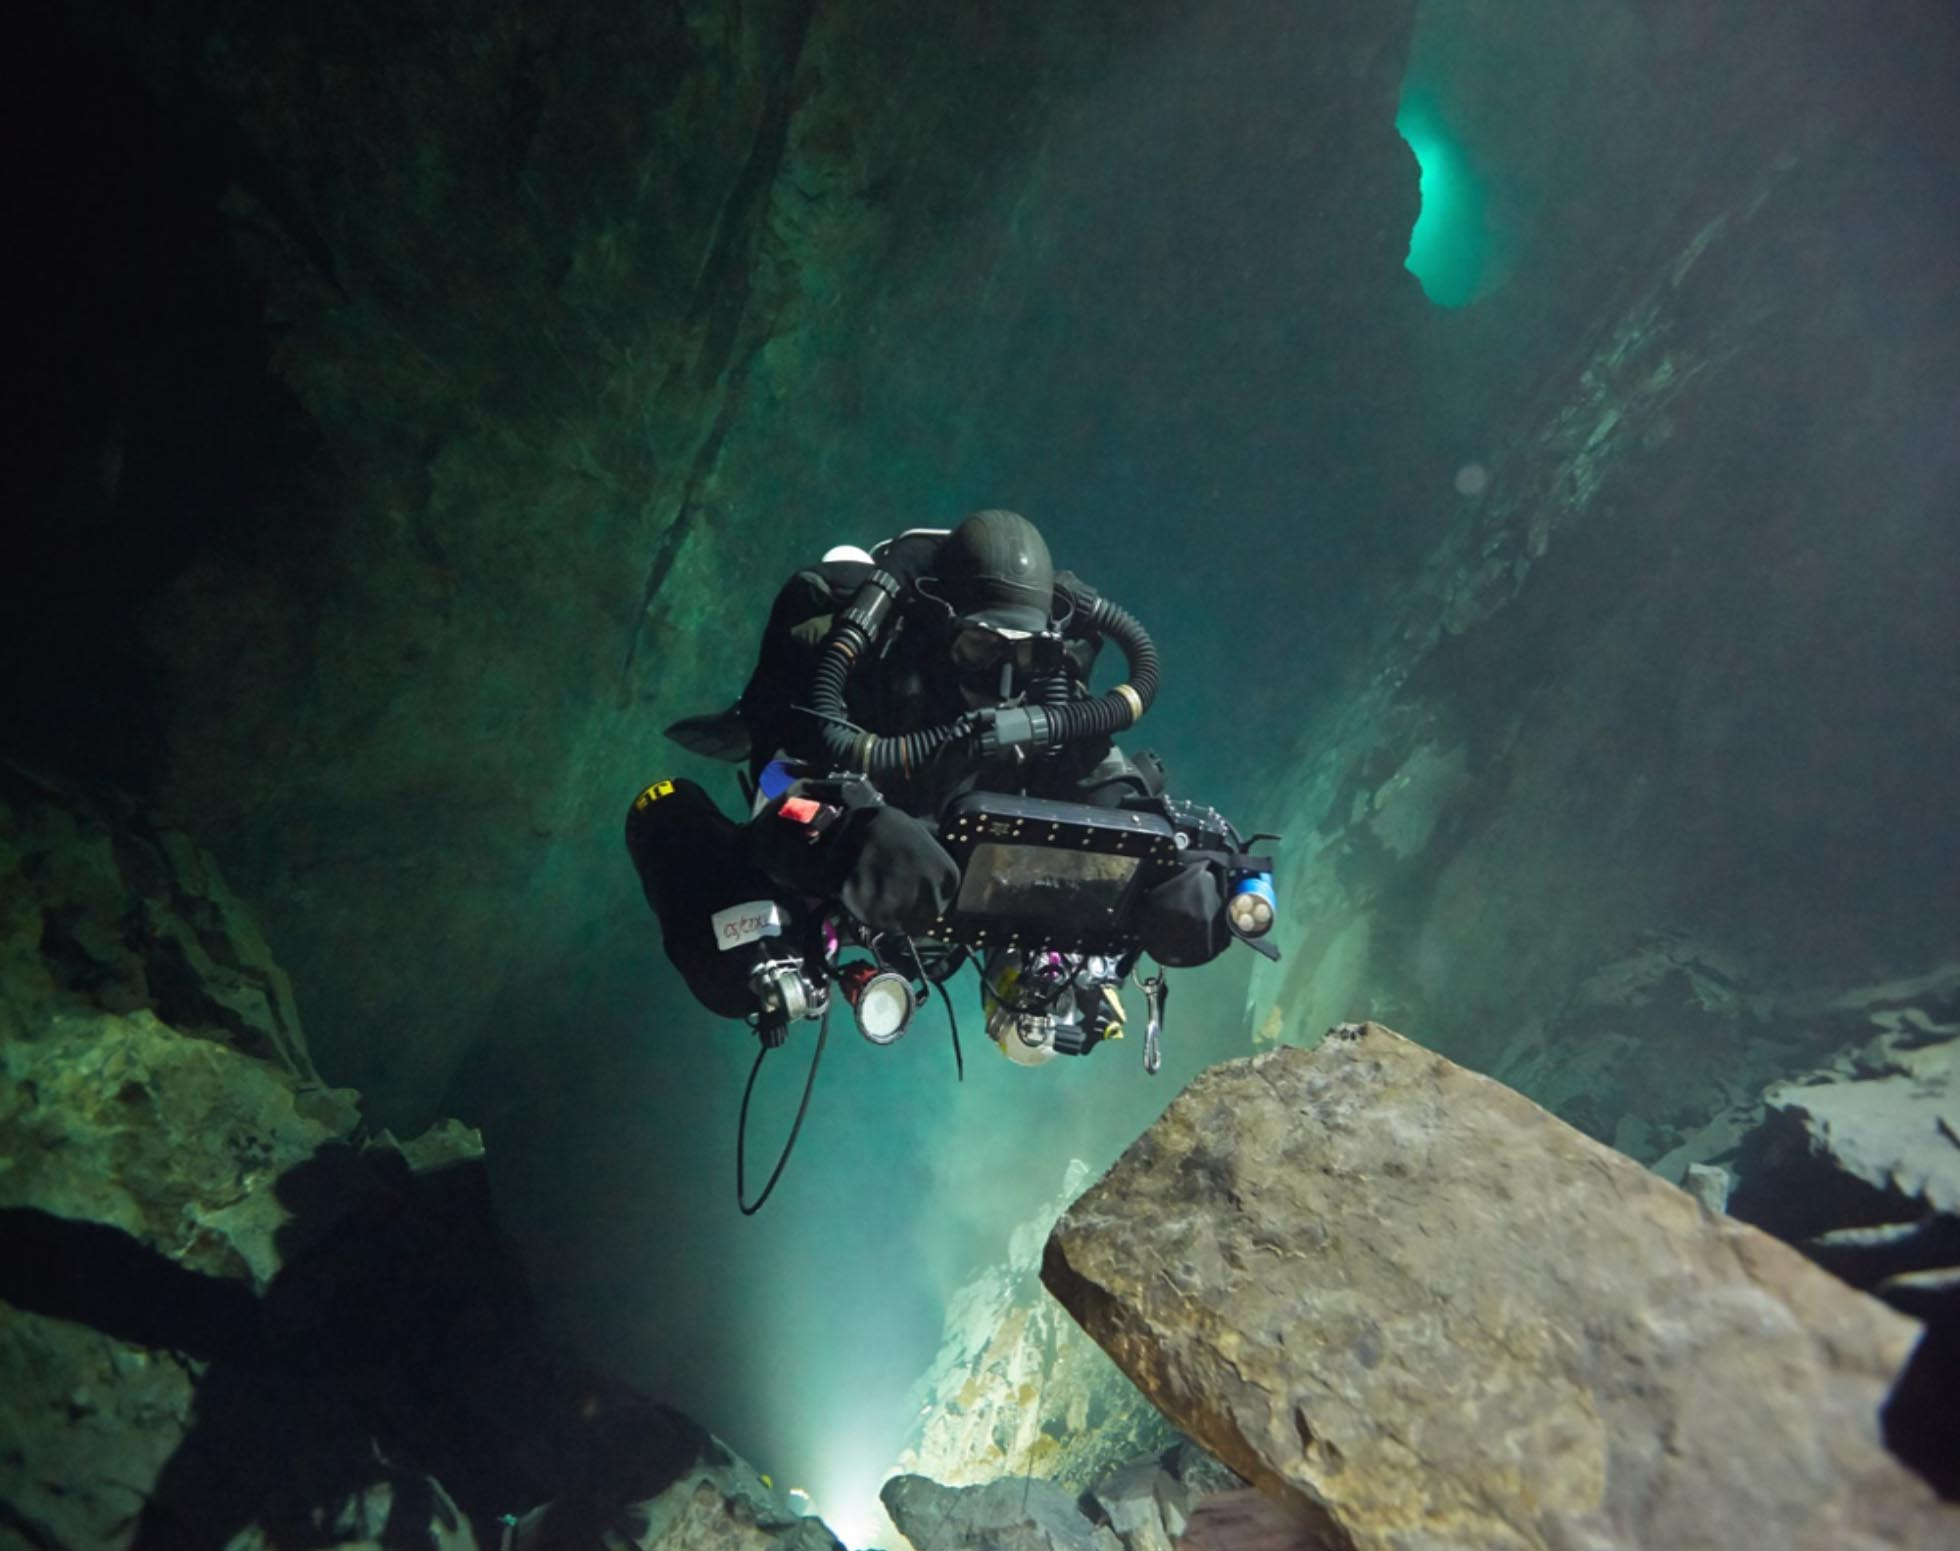 Technology for underwater use could change the way professional divers and researchers work.